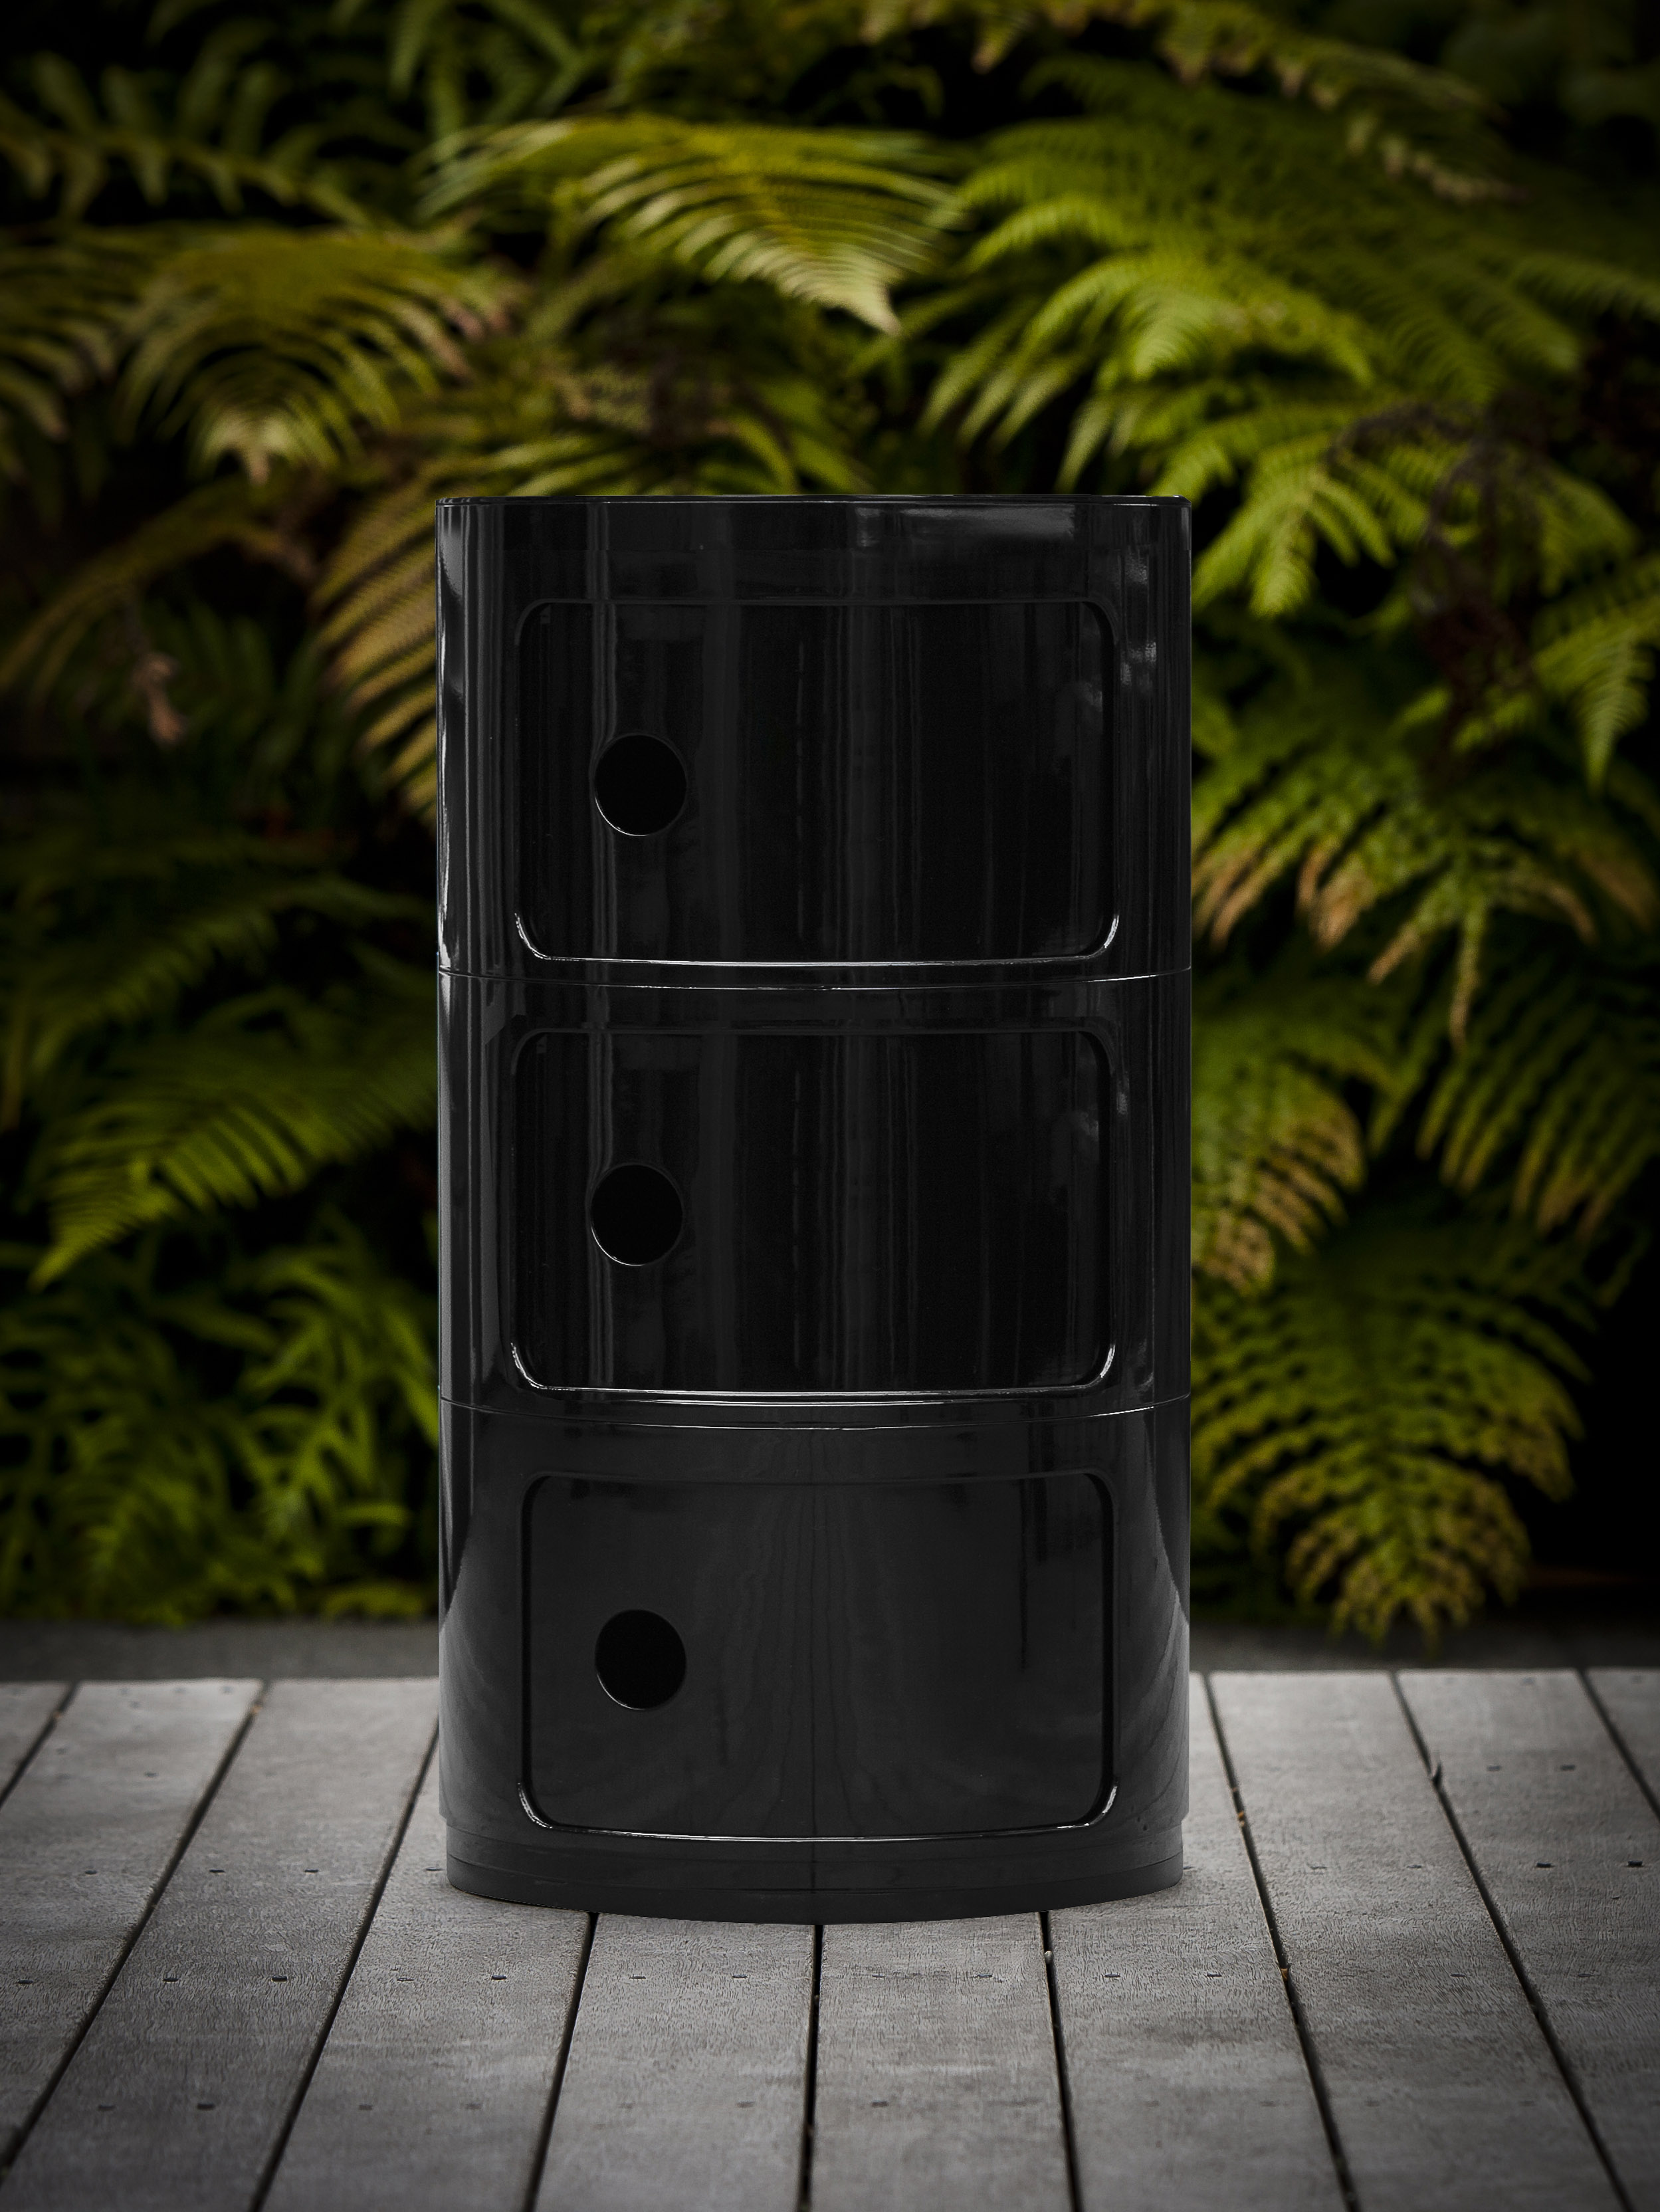 Mocka Post Box 3 - Black